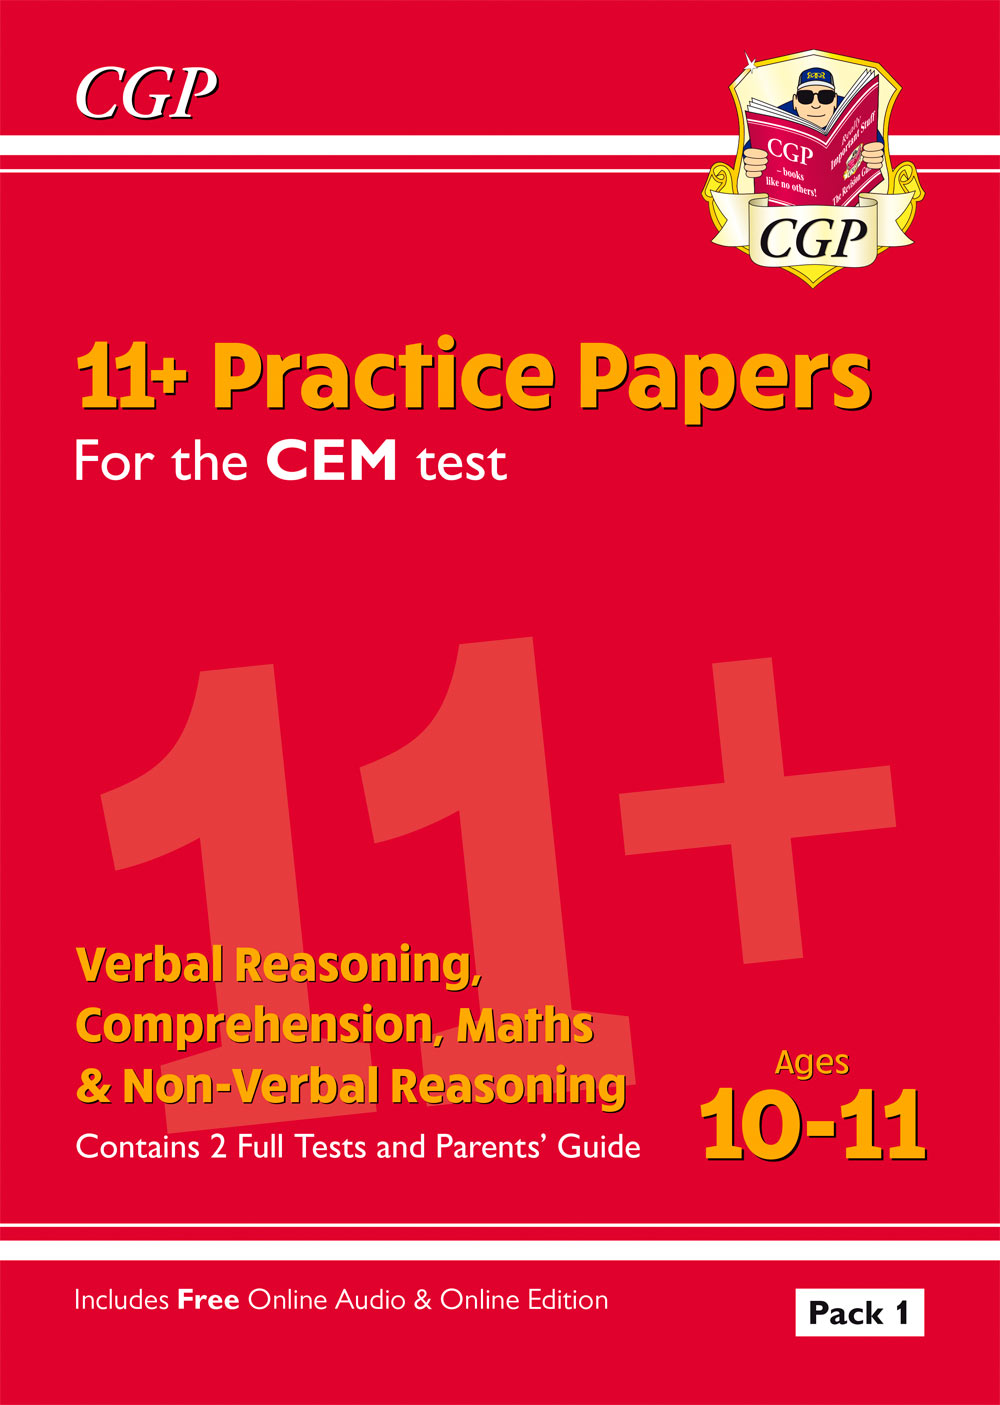 ELPDE2 - 11+ CEM Practice Papers: Ages 10-11 - Pack 1 (with Parents' Guide & Online Edition)